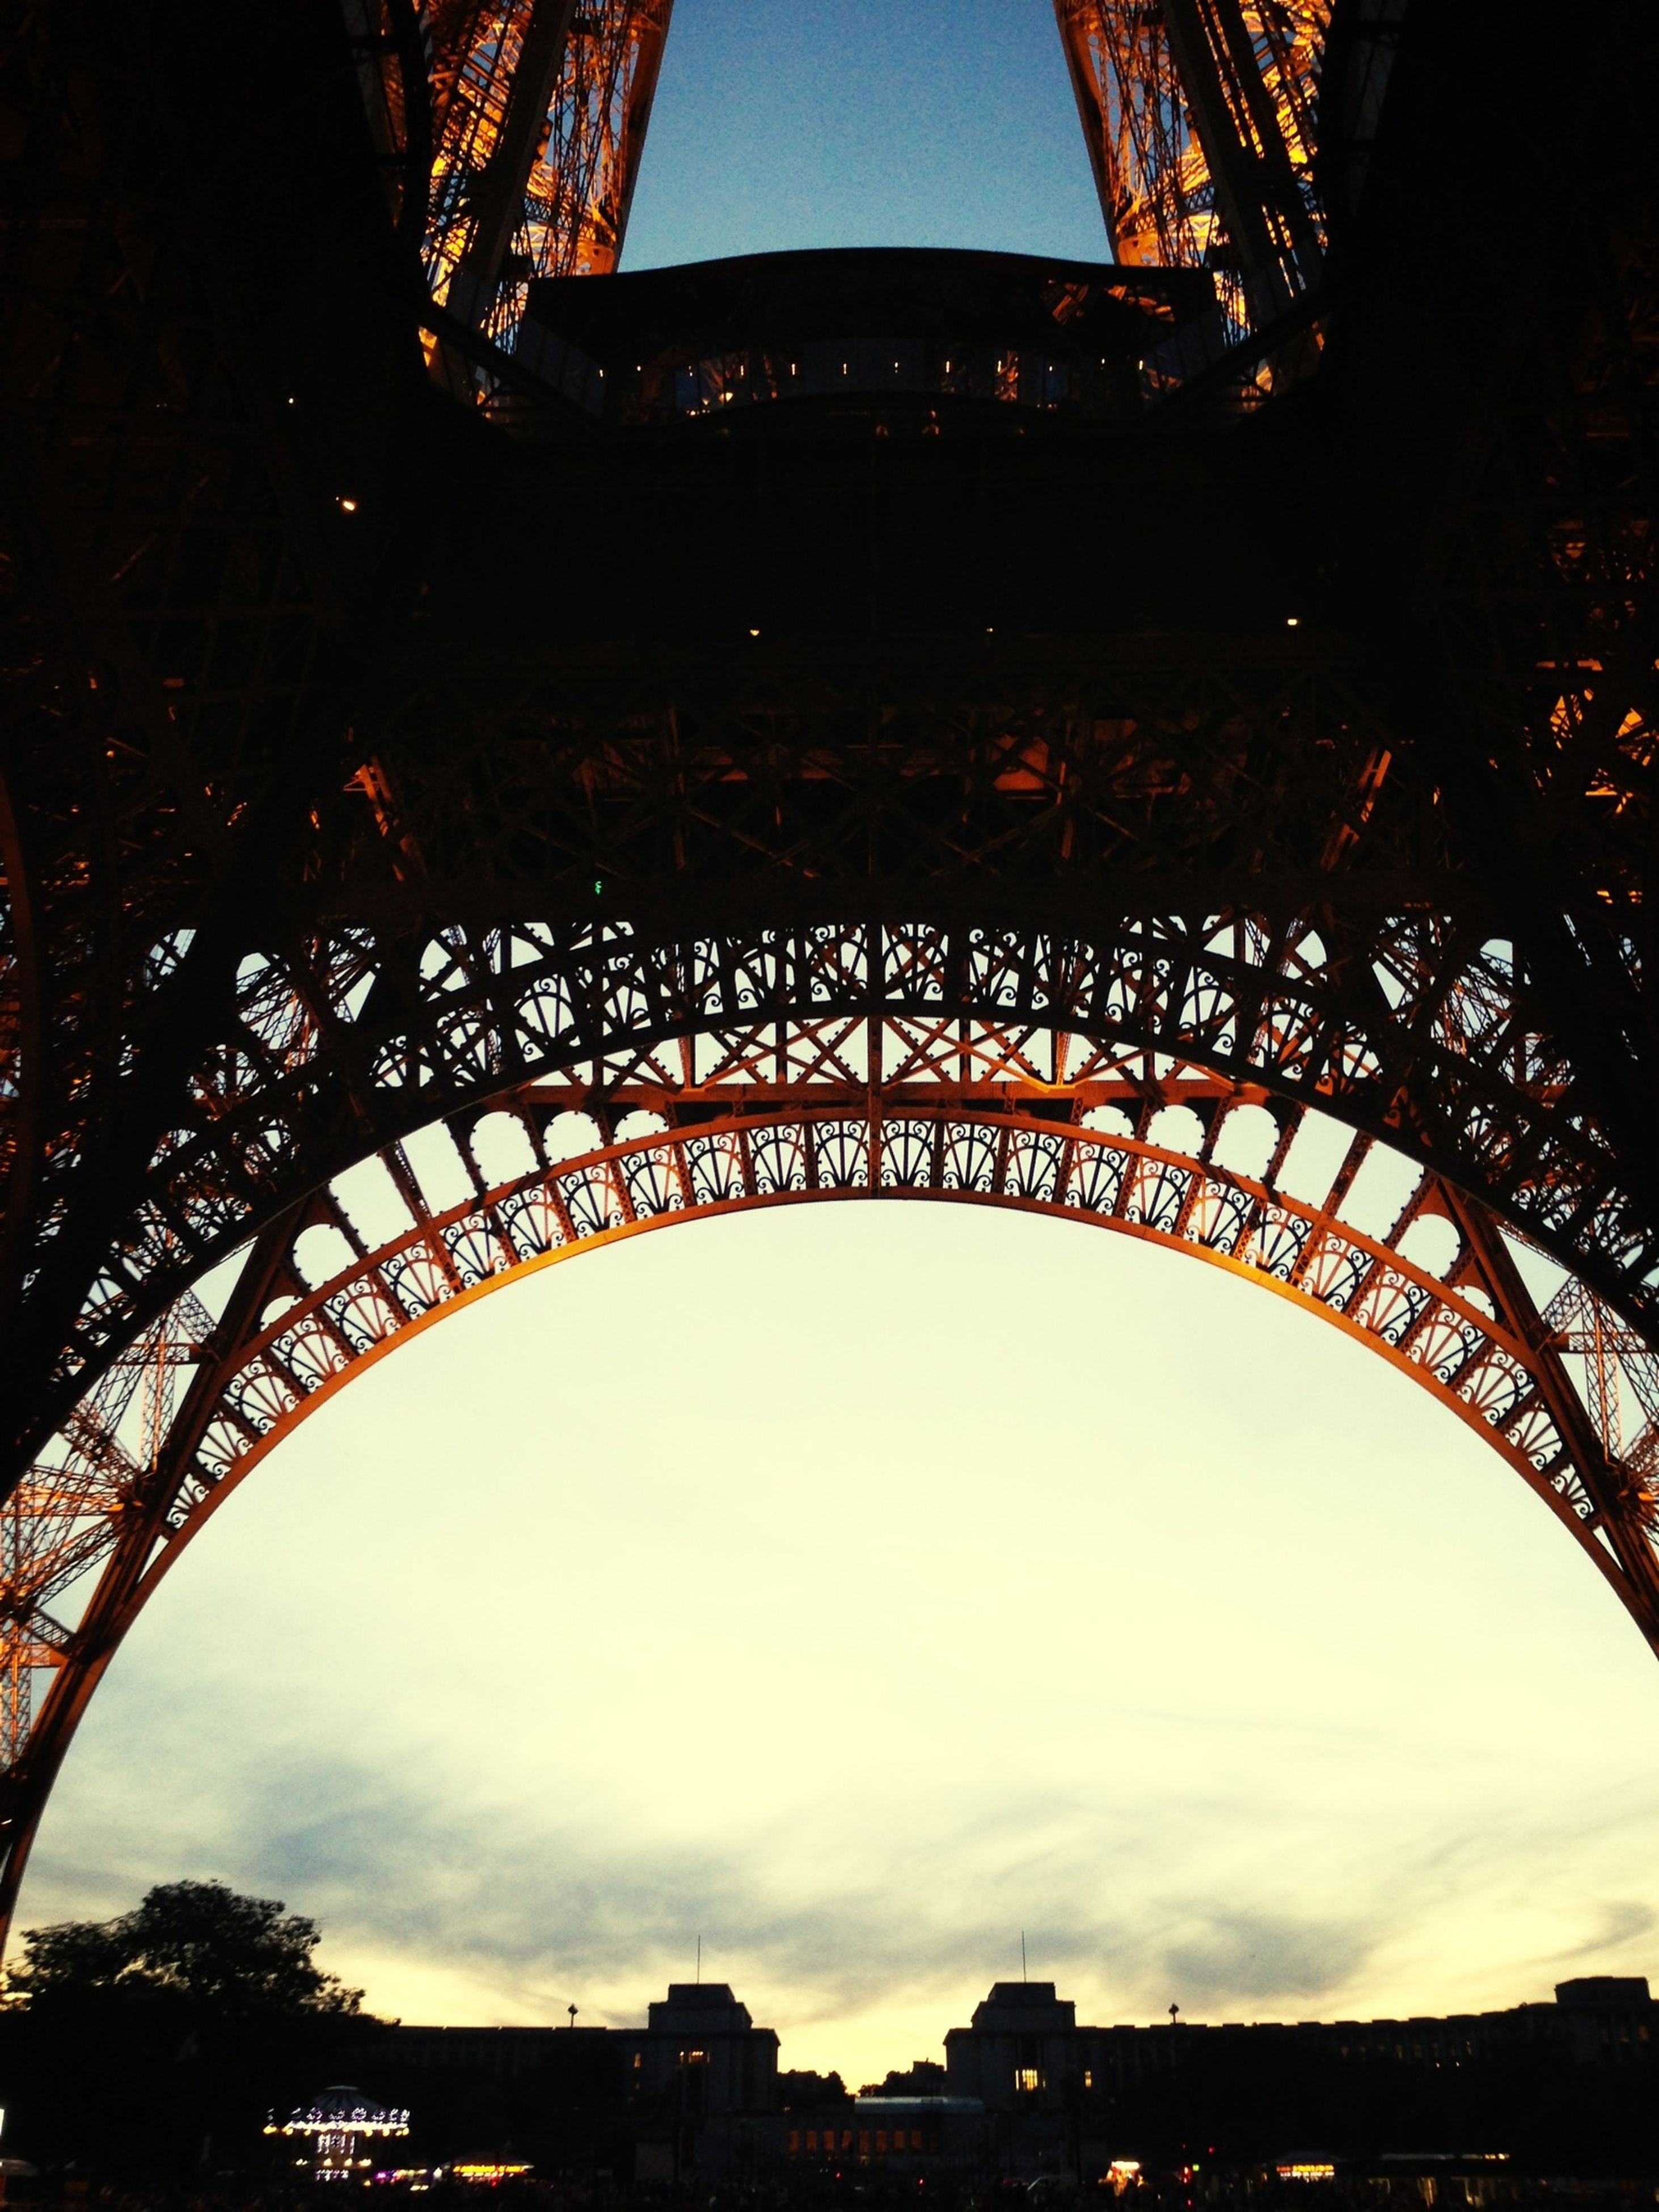 architecture, built structure, low angle view, famous place, bridge - man made structure, international landmark, travel destinations, history, sky, connection, engineering, arch, tourism, travel, building exterior, capital cities, culture, eiffel tower, city, metal